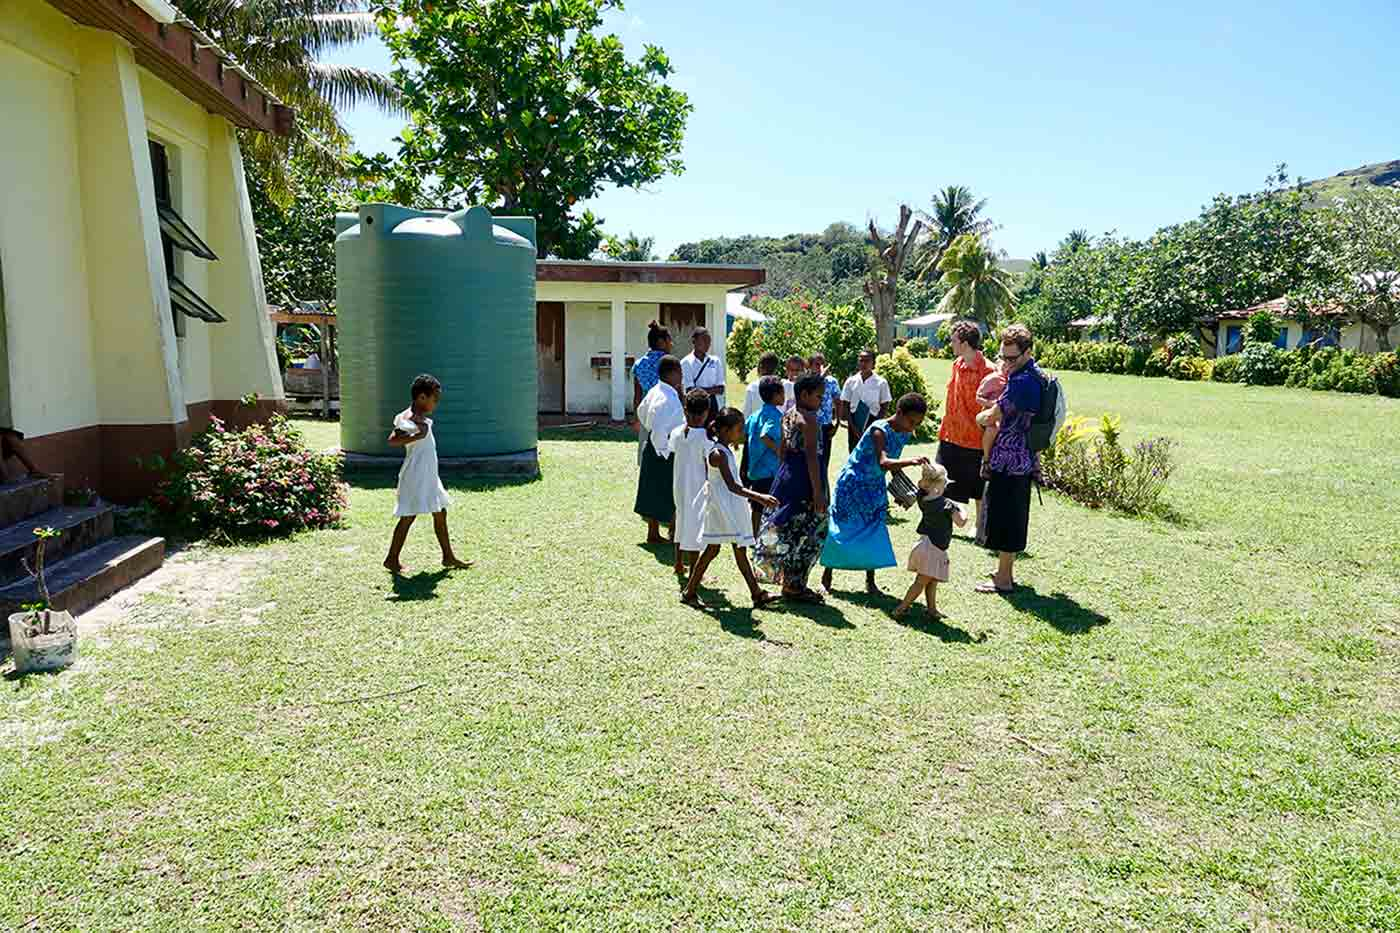 Children interact with locals at Nacula Village